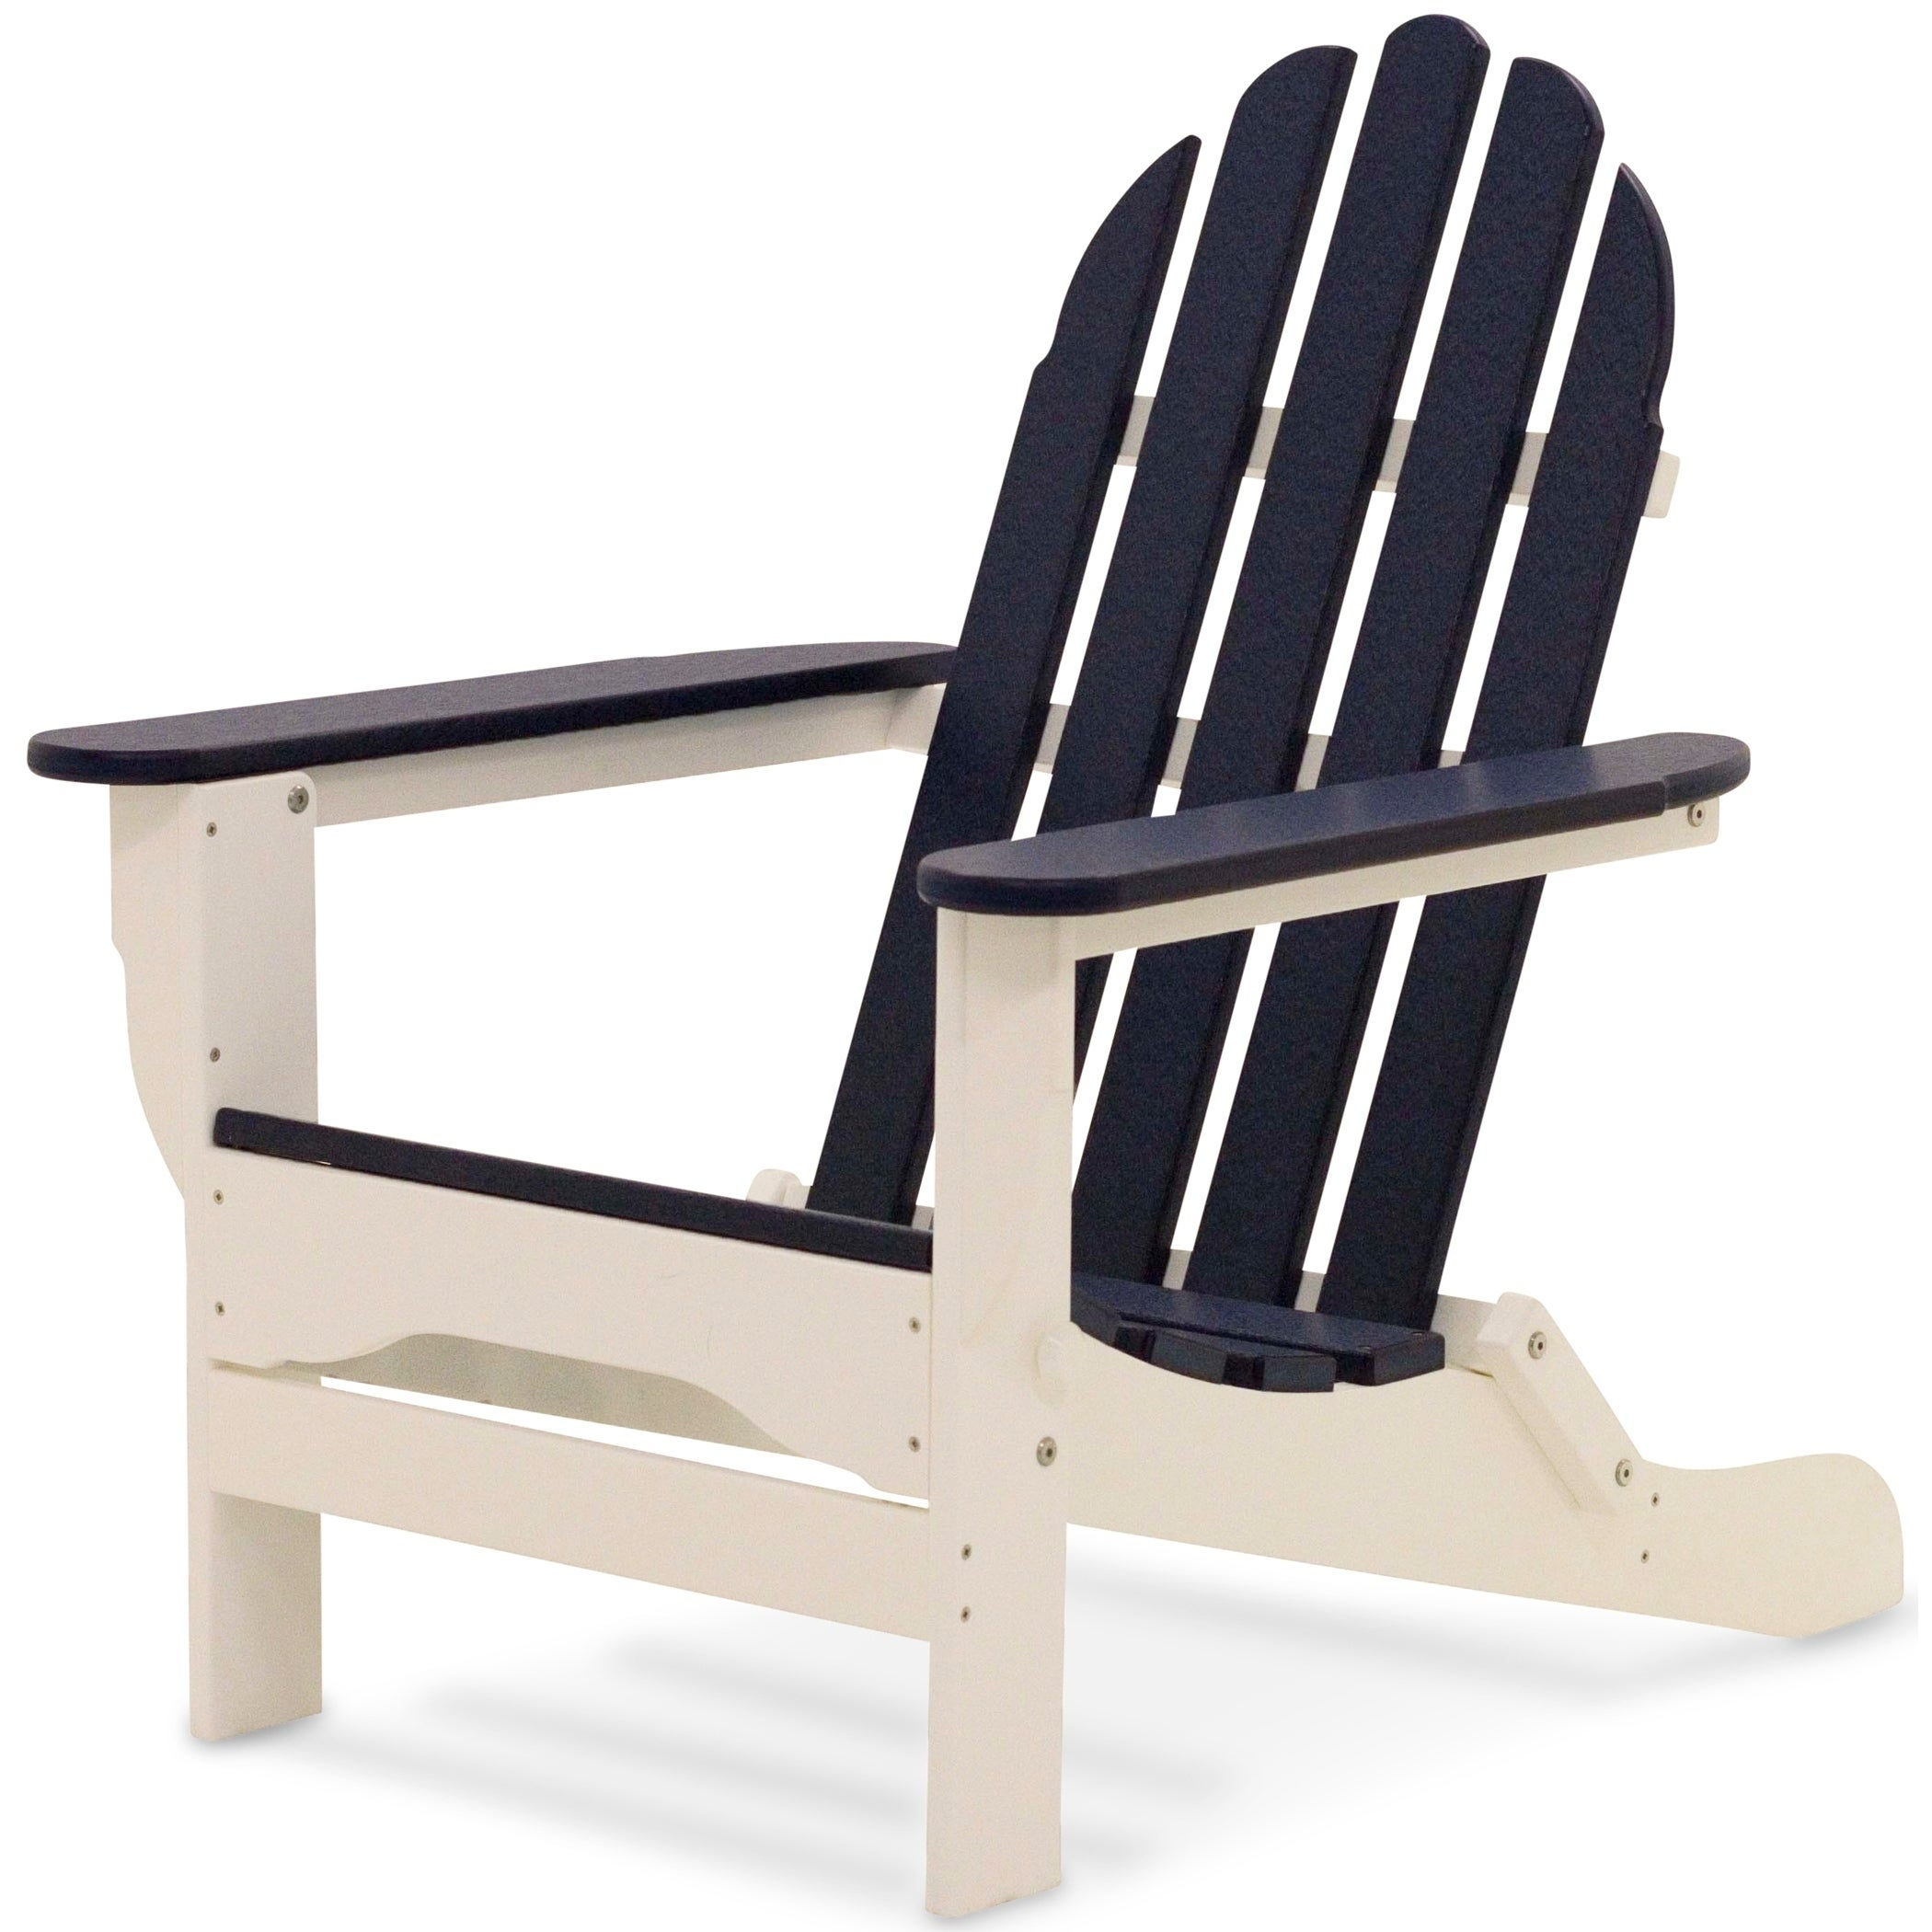 Charming DuroGreen All Weather Adirondack Chair   Free Shipping Today   Overstock    25928776